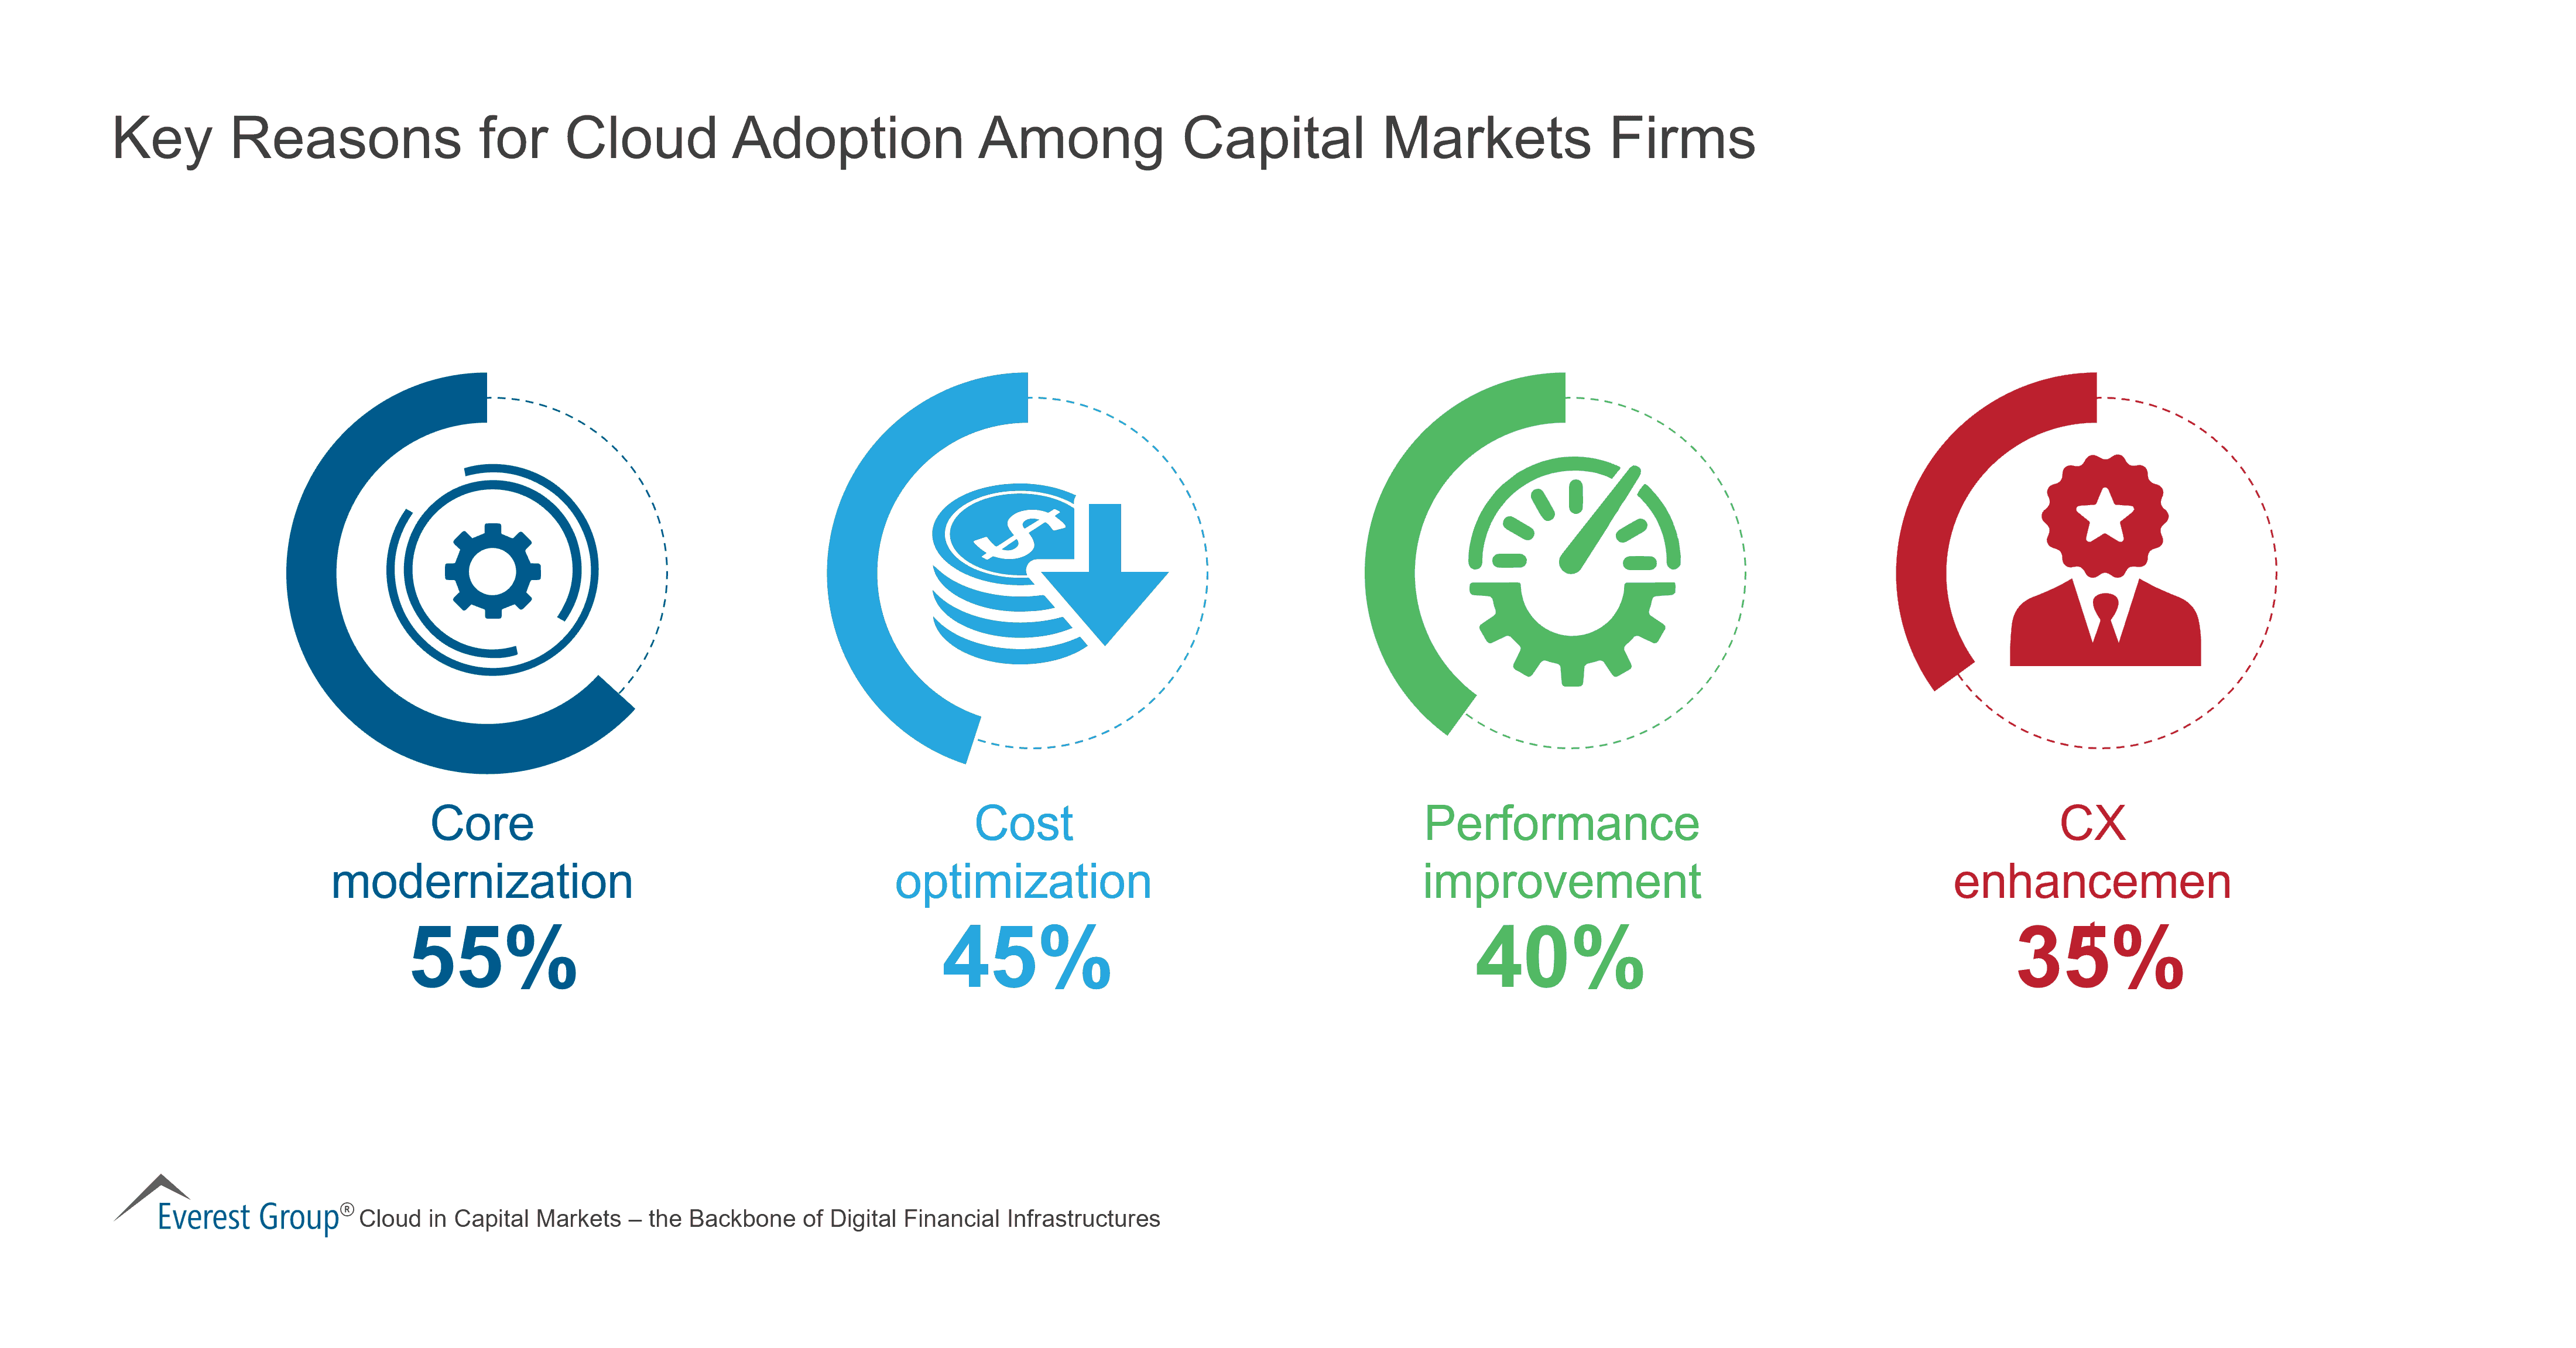 Key Reasons for Cloud Adoption Among Capital Markets Firms